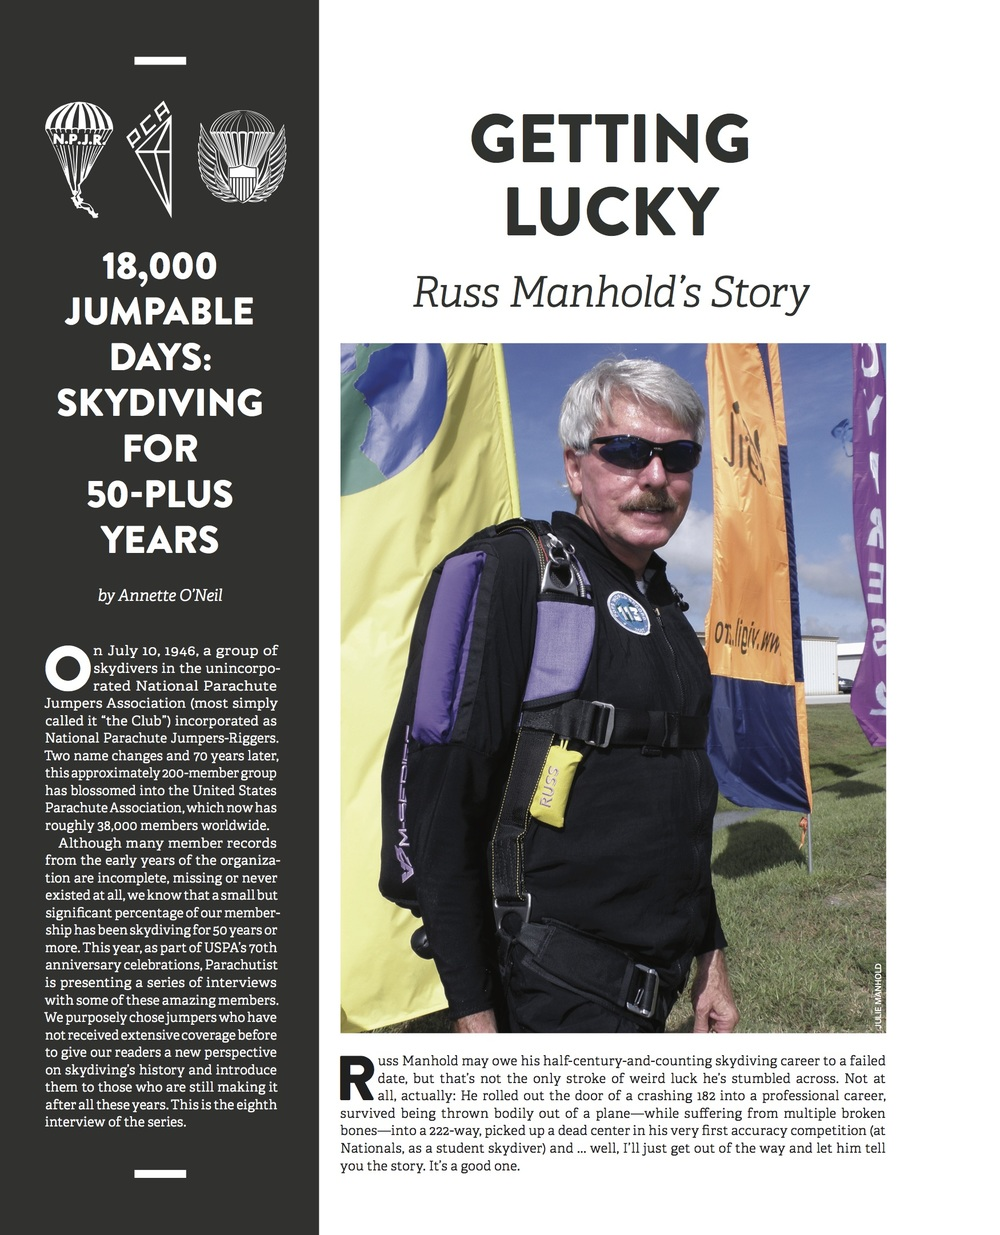 Russ Manhold: Getting Lucky